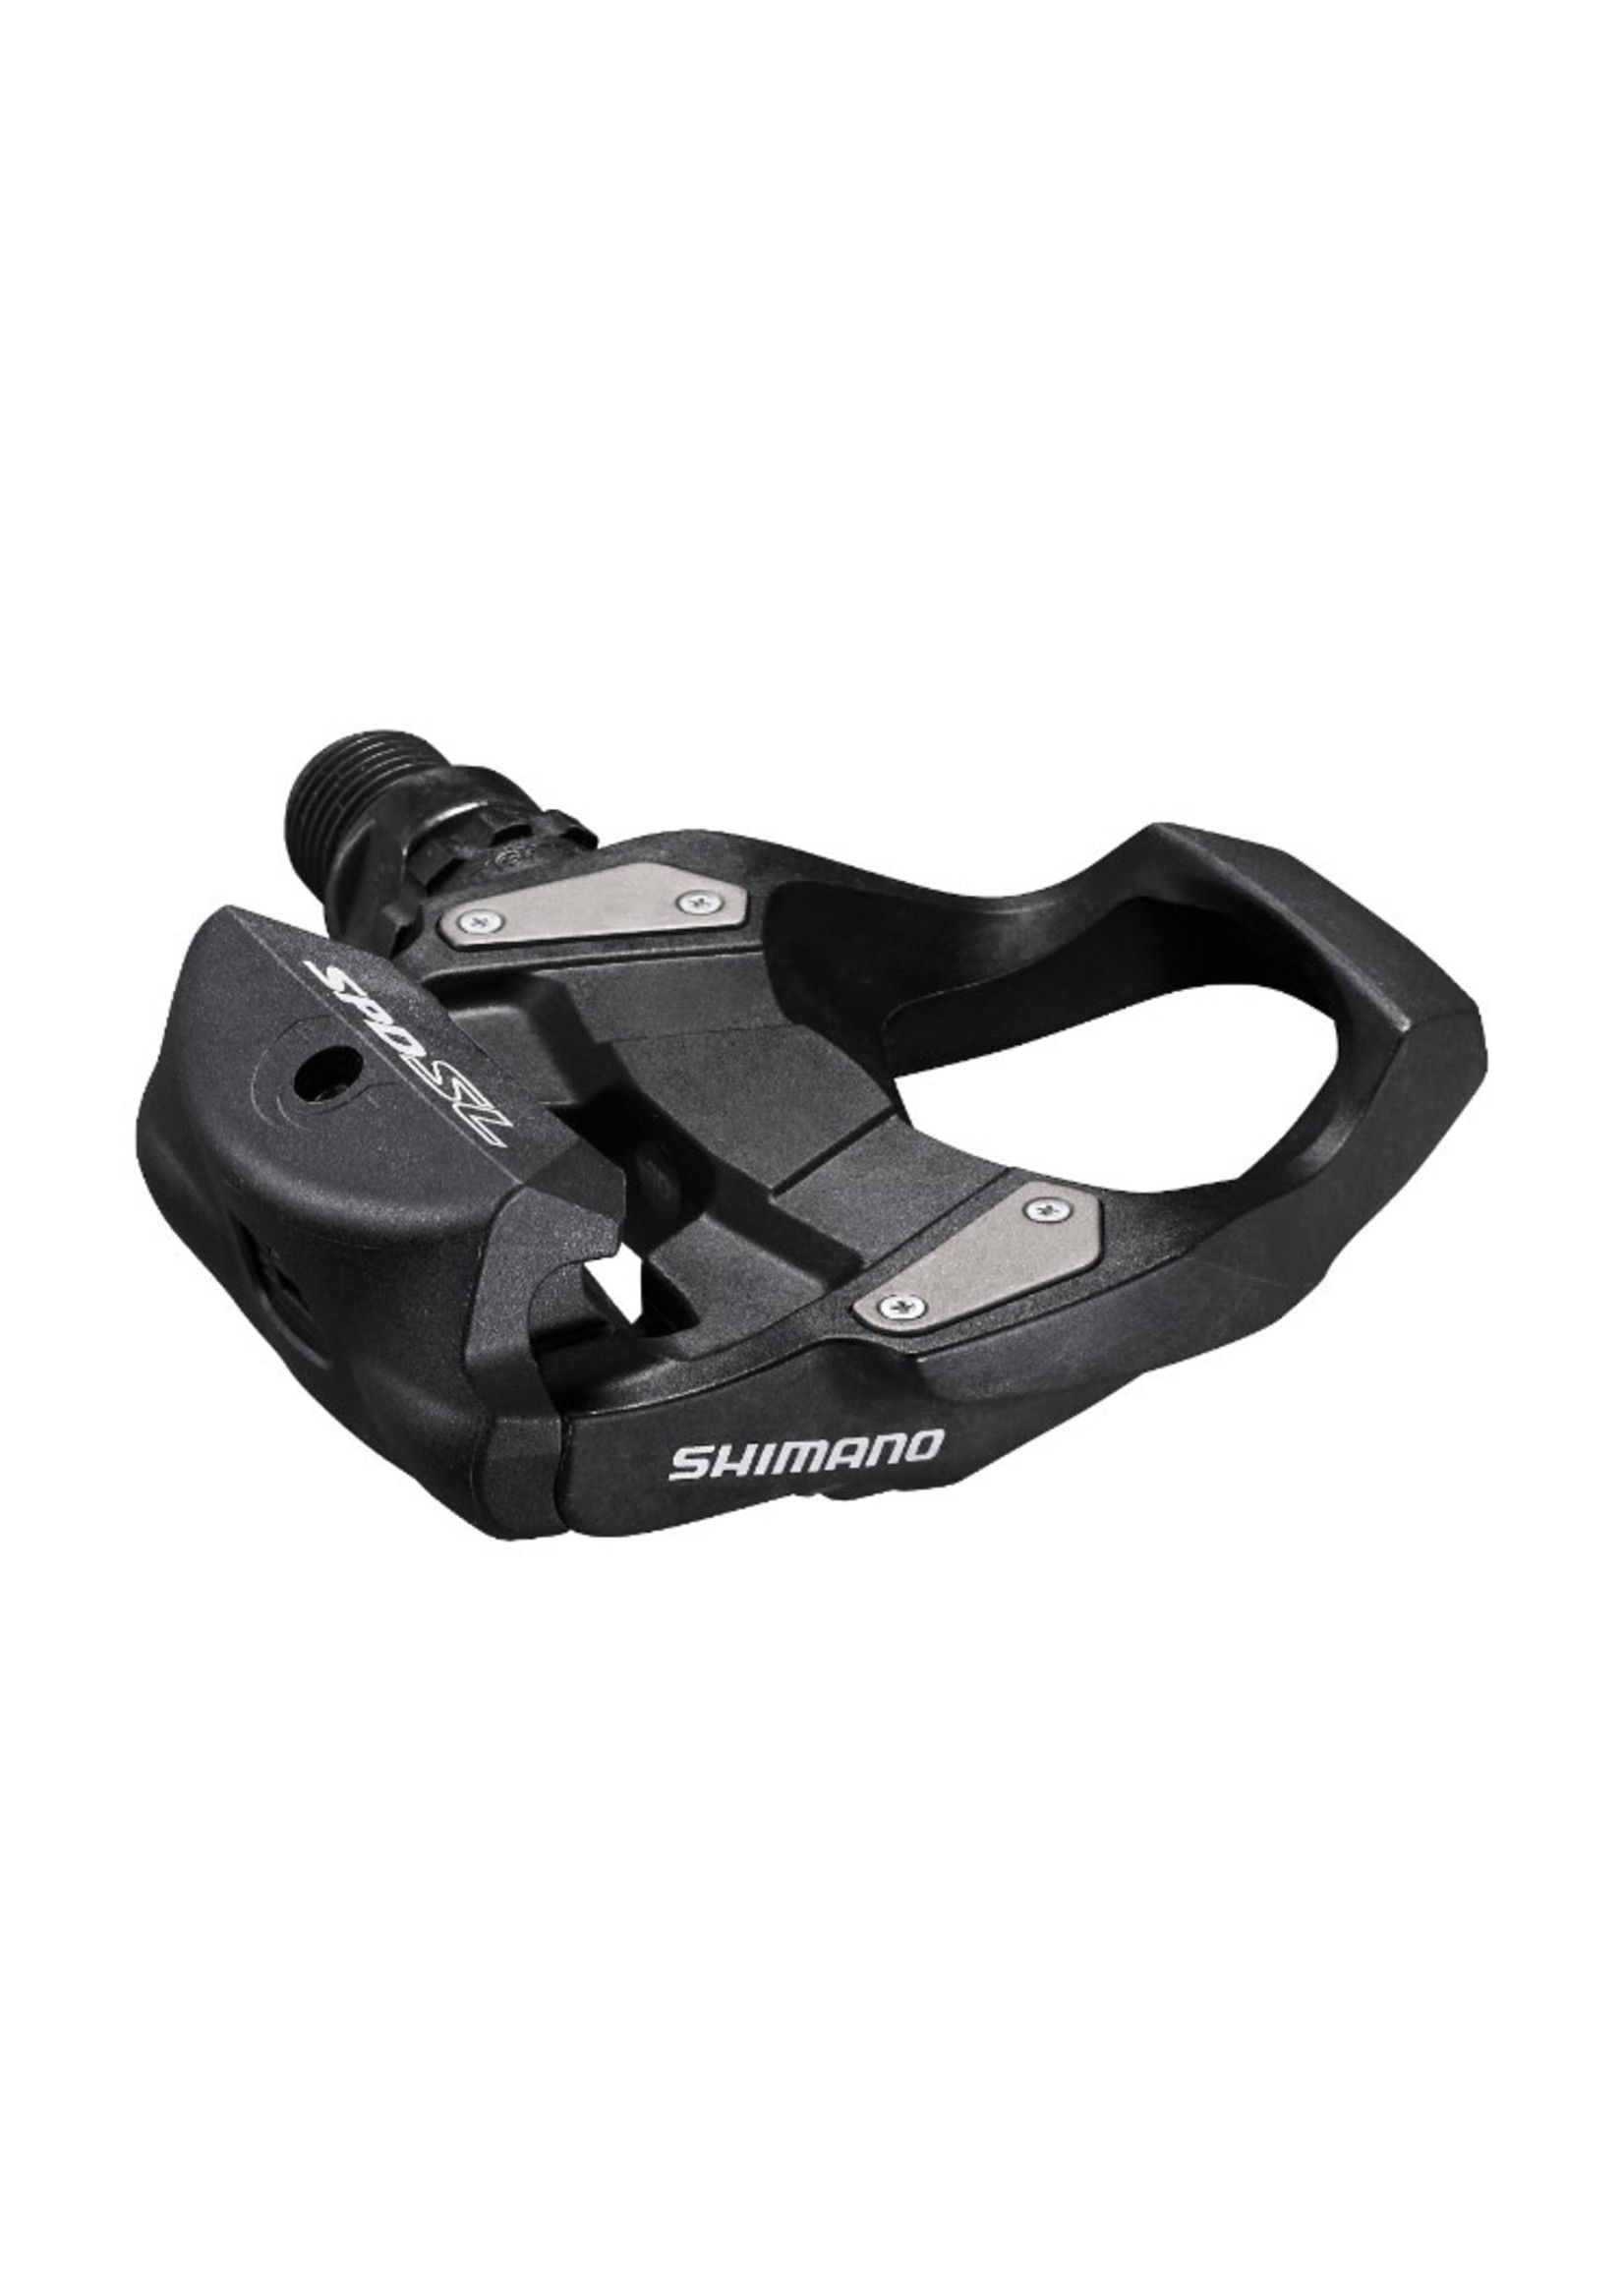 Shimano Pedal  PD-RS500  SPD-SL With Cleat(SM-SH11)